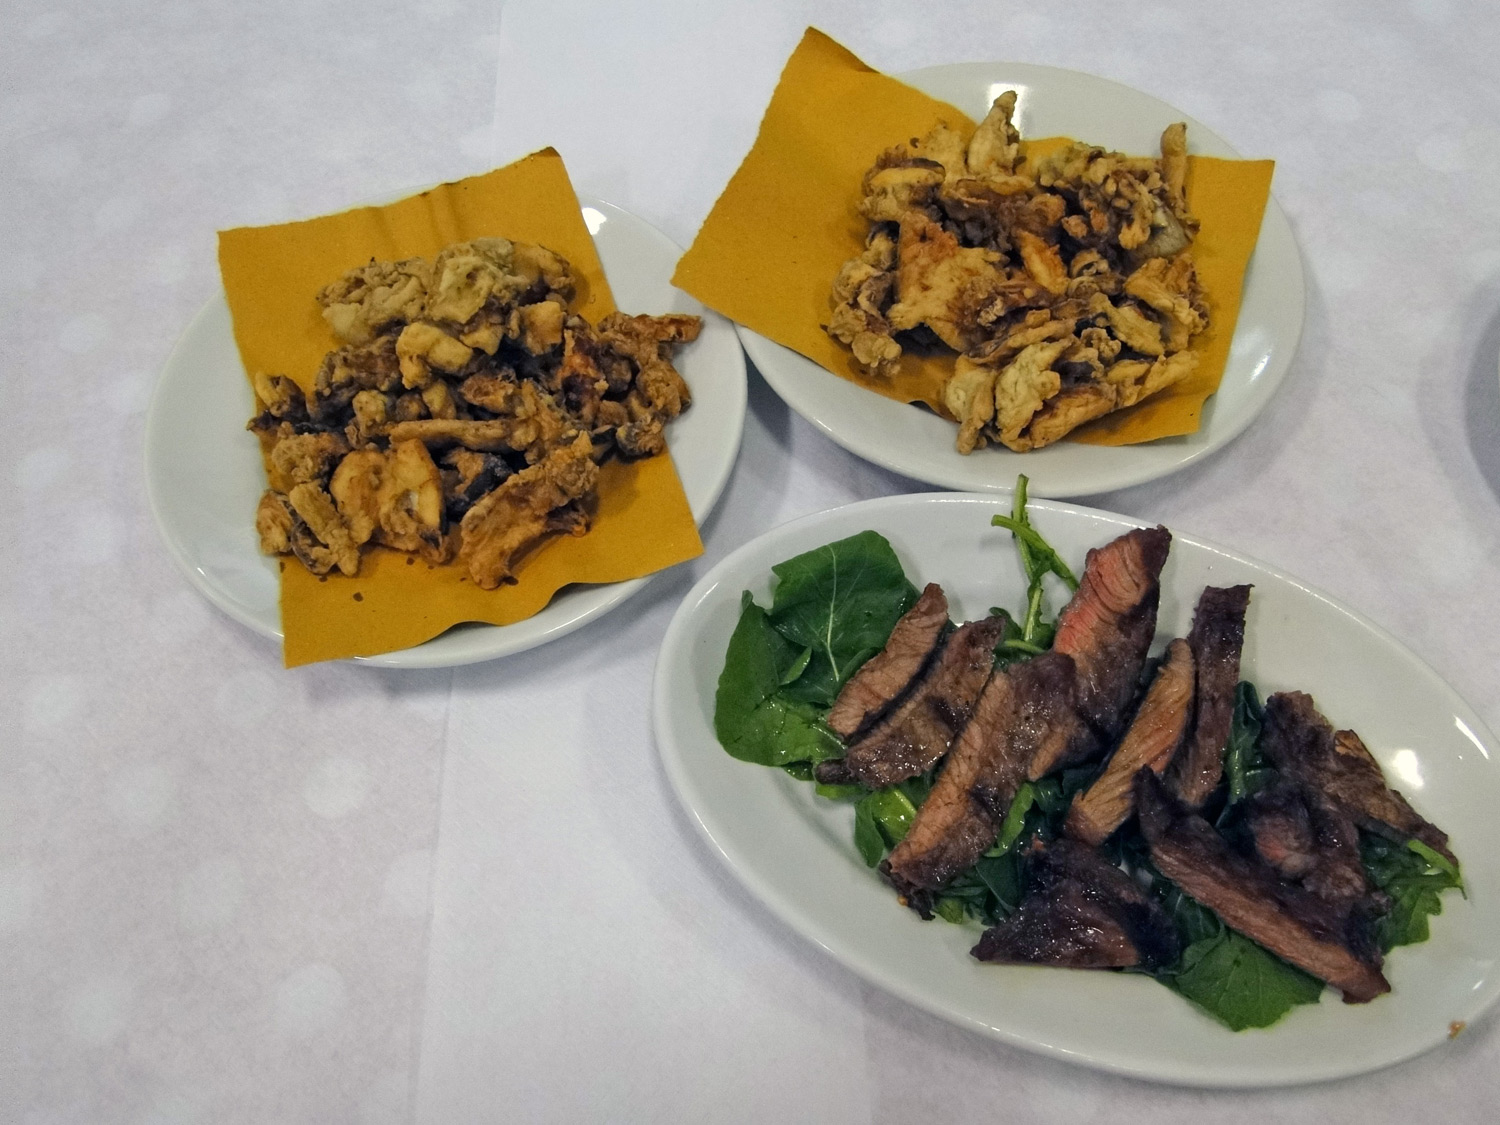 Grilled meat and mushrooms